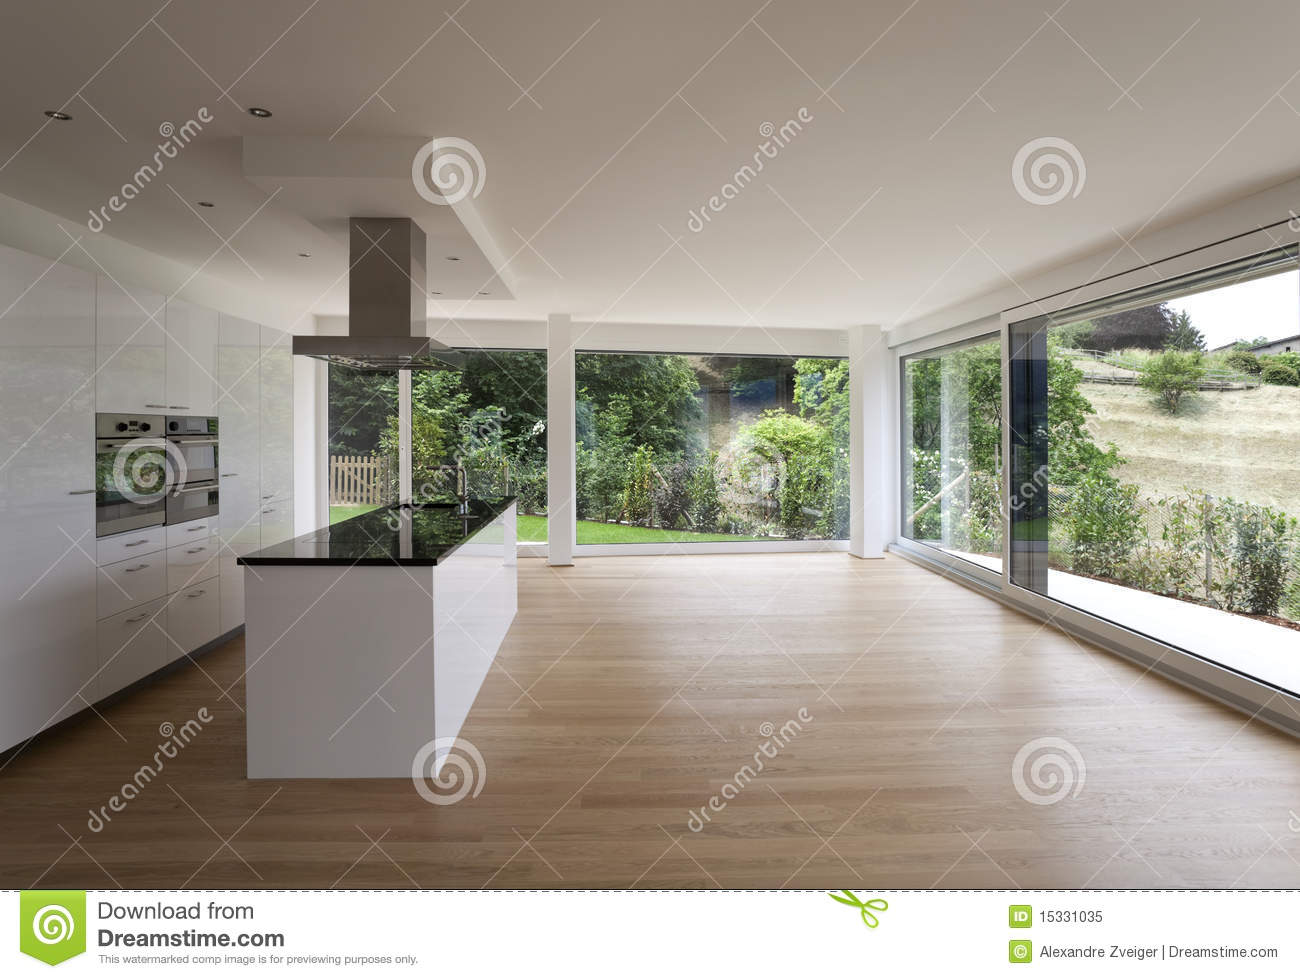 Bel int rieur d 39 une maison moderne image stock image du for Villa contemporaine interieur